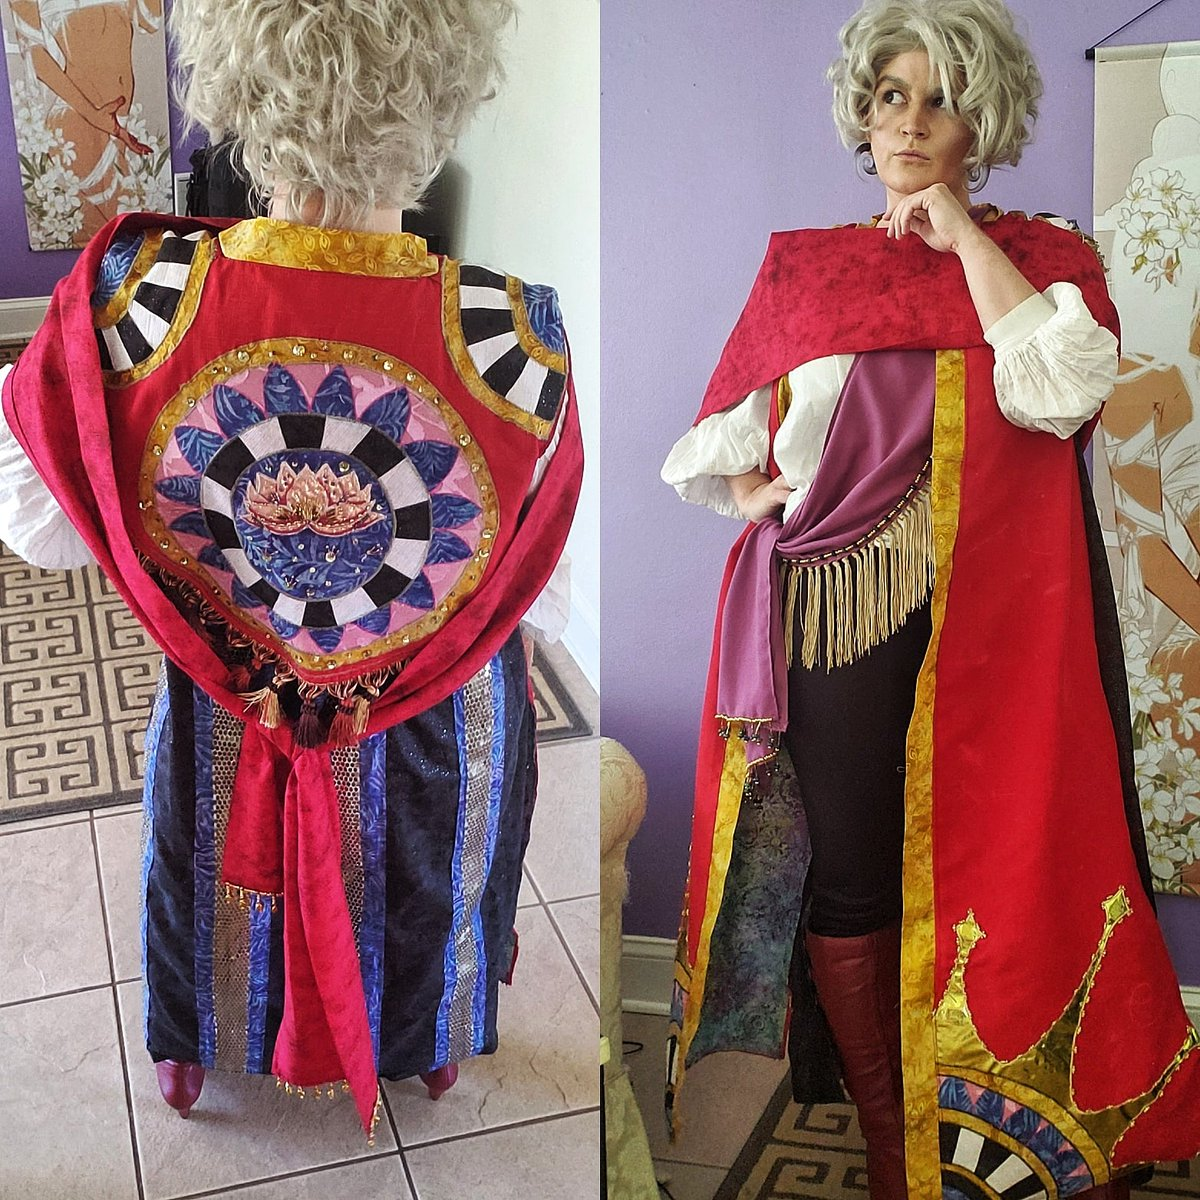 This is what I've been working on during isolation. I'm not quite done yet but I'm getting closer! Hopefully I'll have a con to wear it to this year. /cough, cough/ Metrocon /fingers crossed/. #asrathearcana #metrocon2020 #thearcanacosplay #asracosplay pic.twitter.com/IaQPdYmqSp